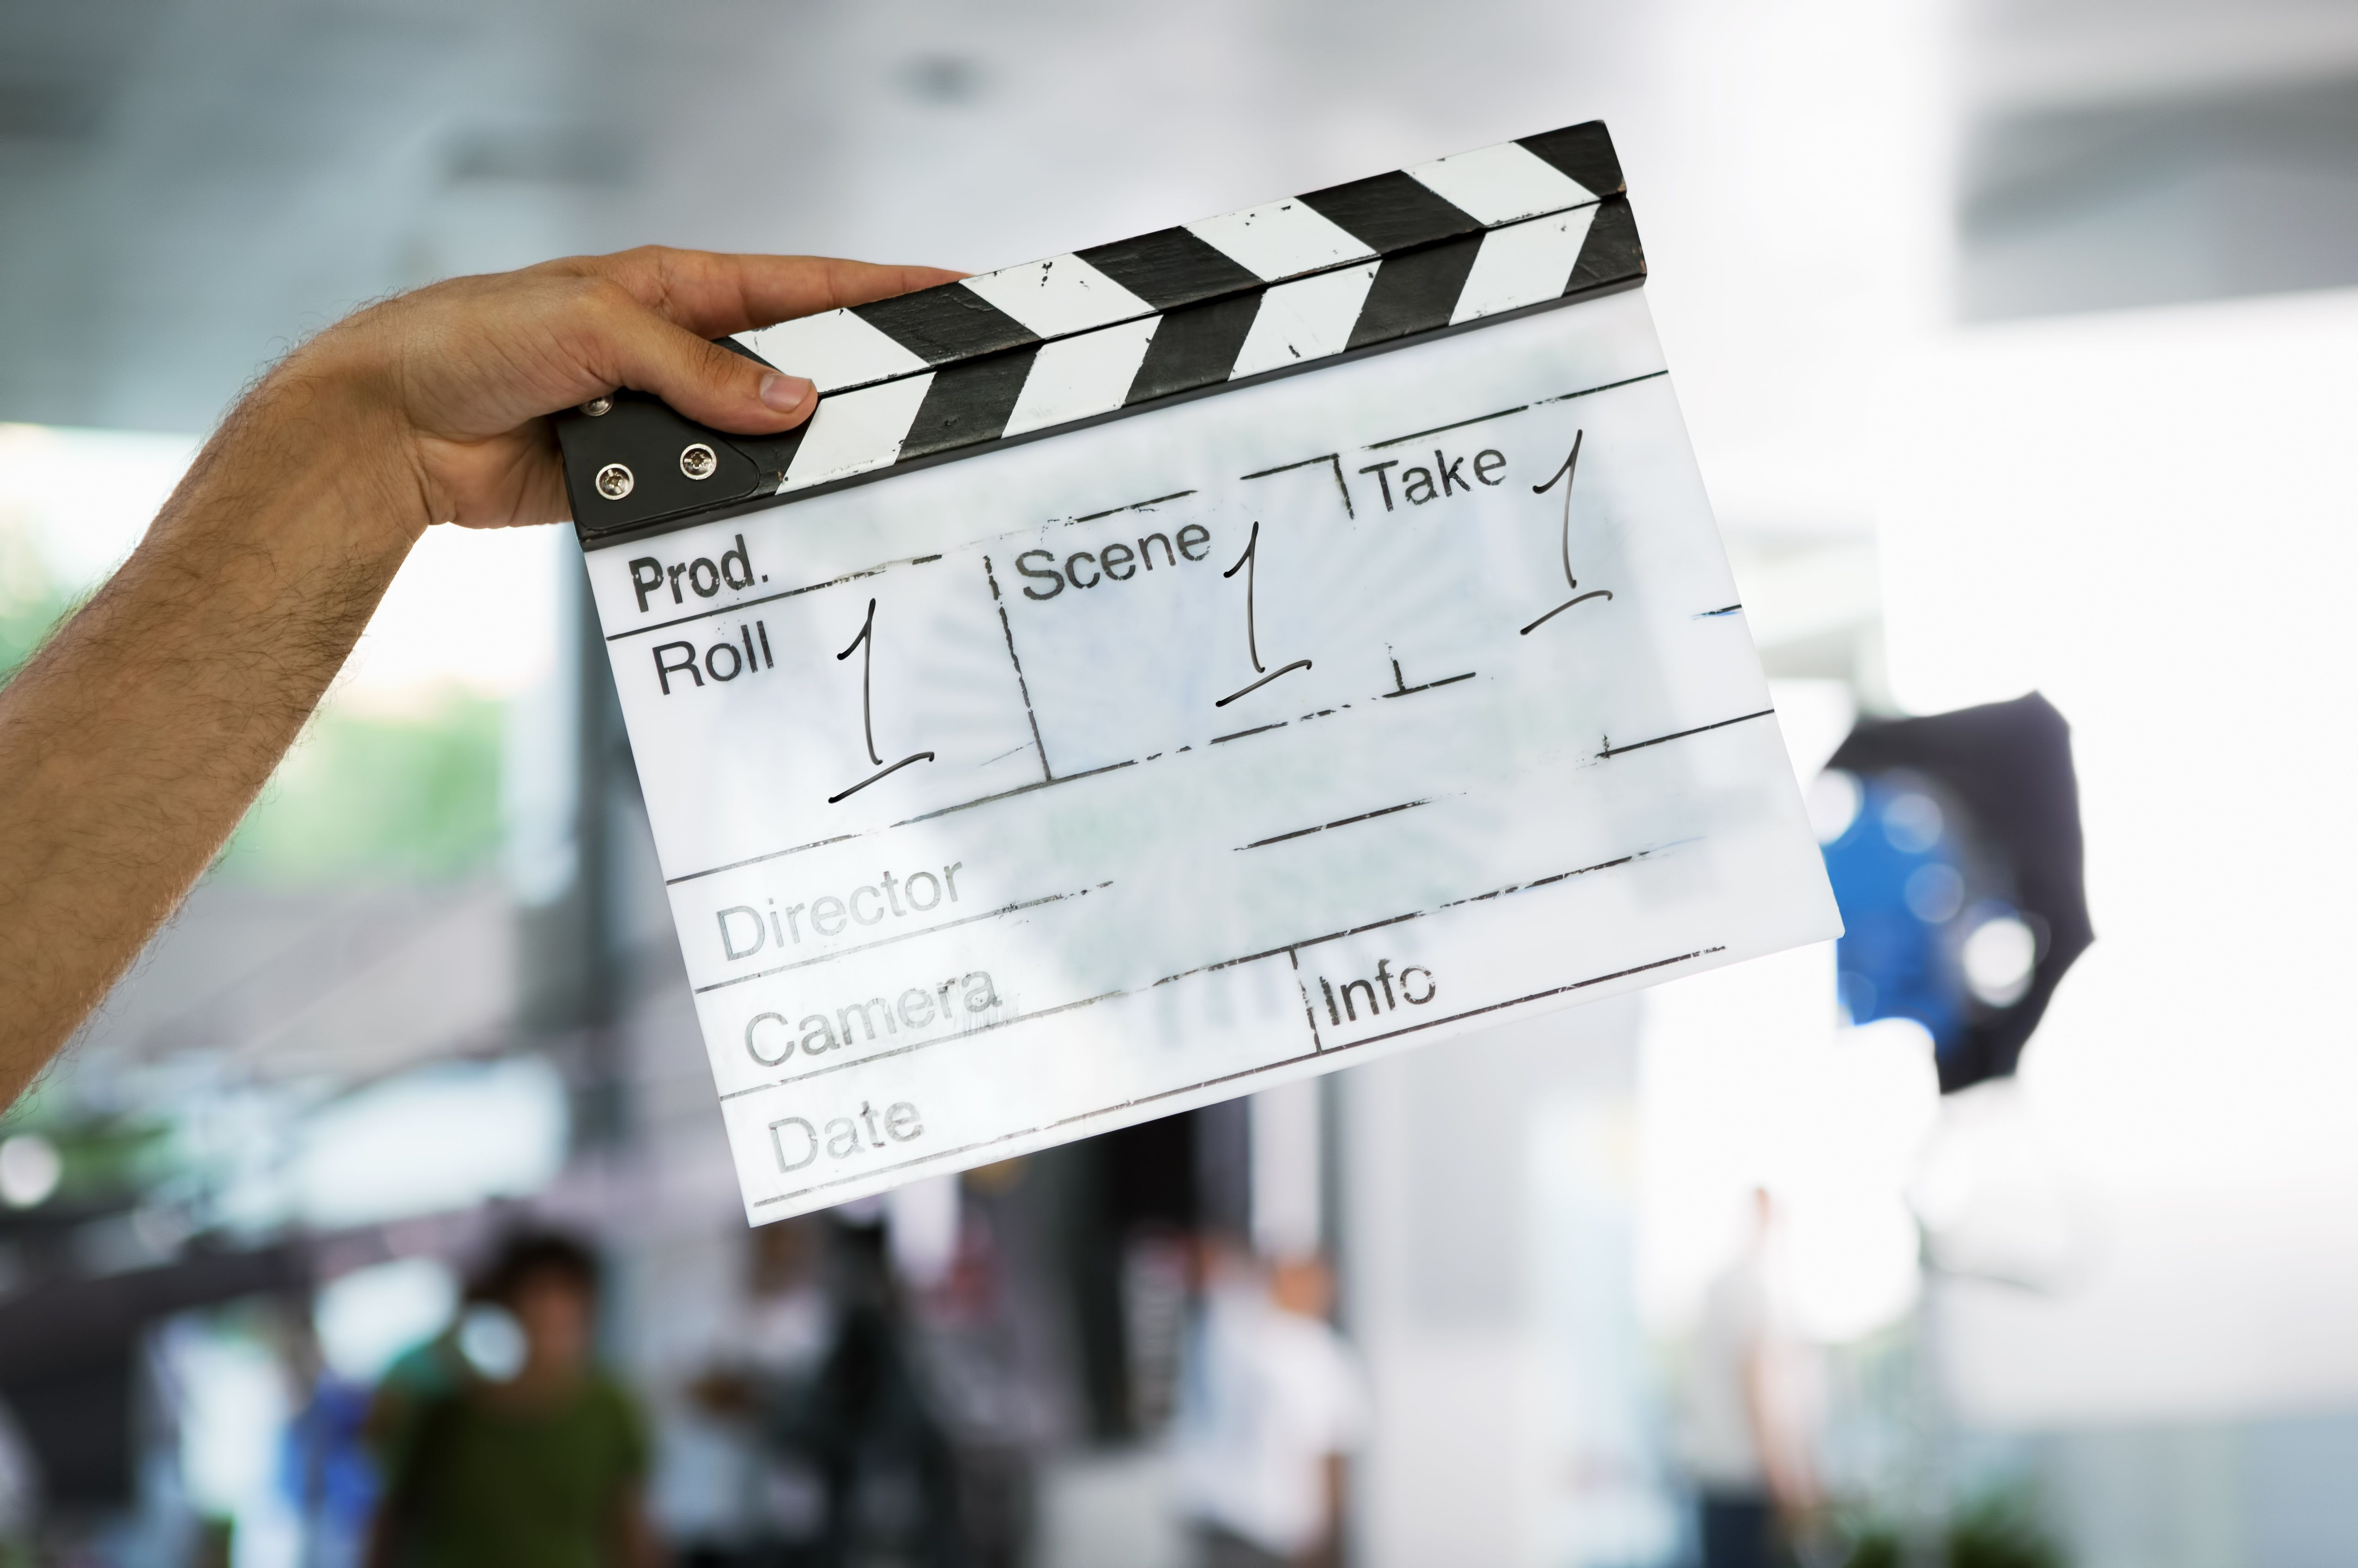 learn the skills needed for tvfilm production jobs - Best Careers For Women Per Skill Sets Advantages